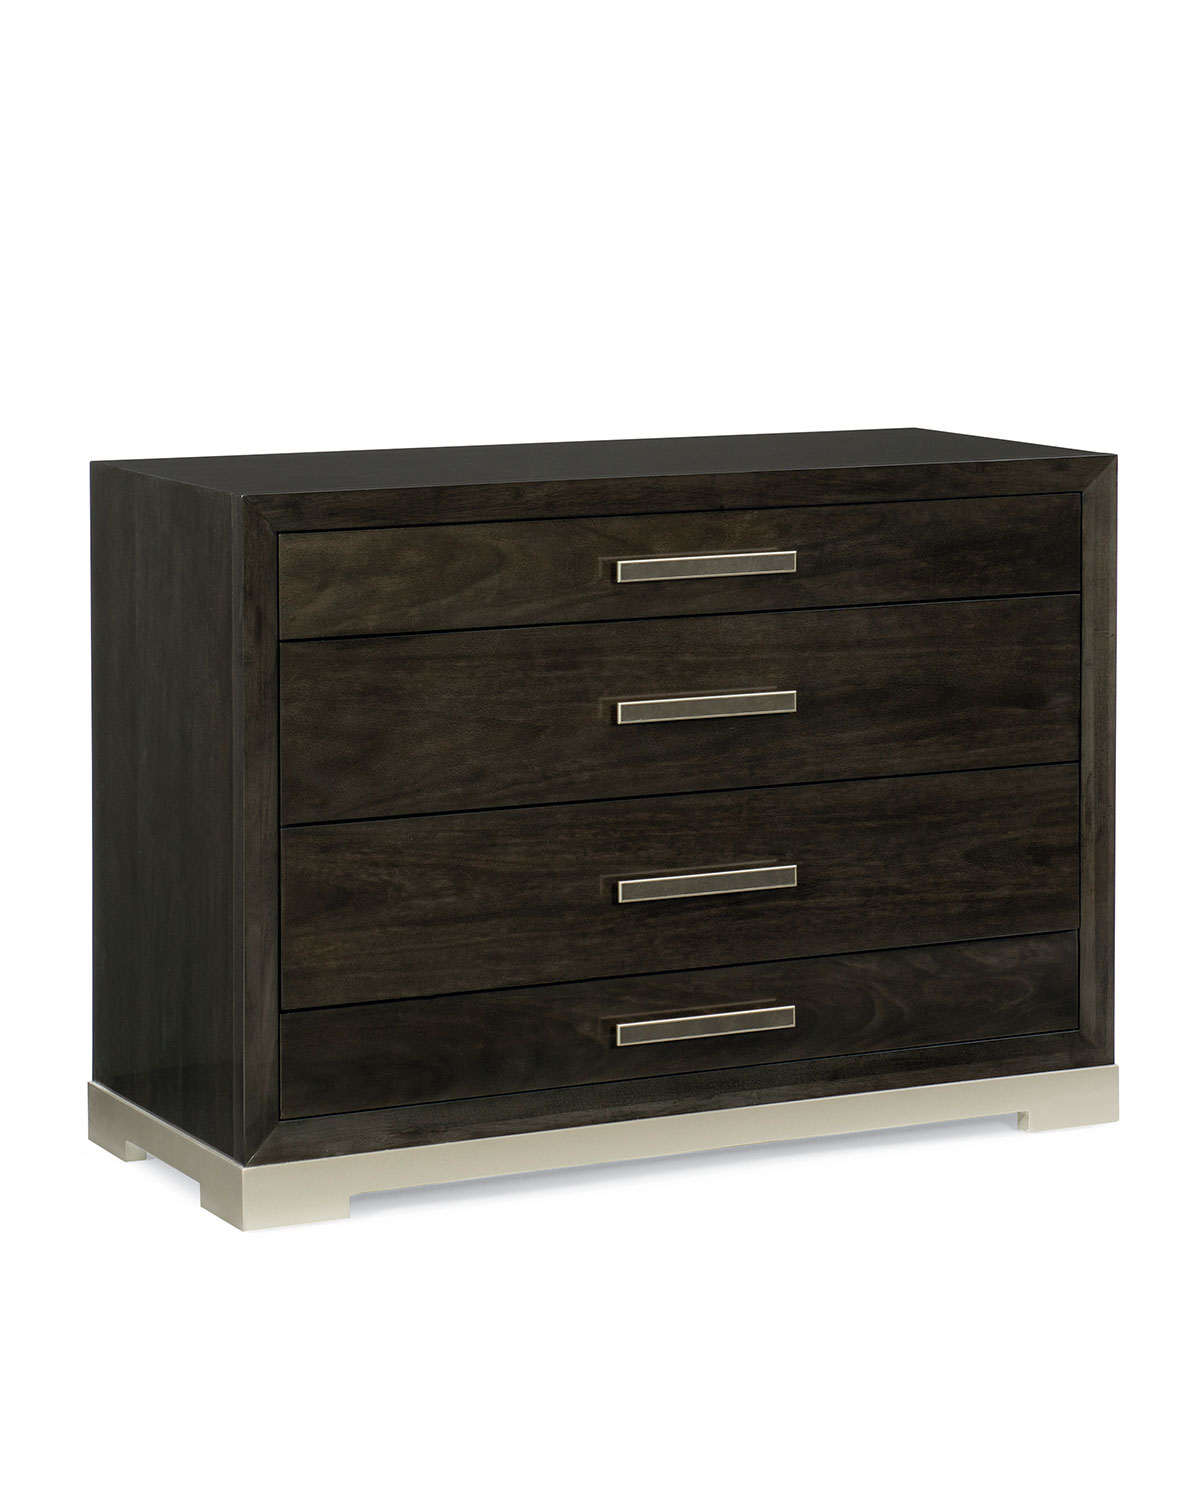 Caracoleloft Chest